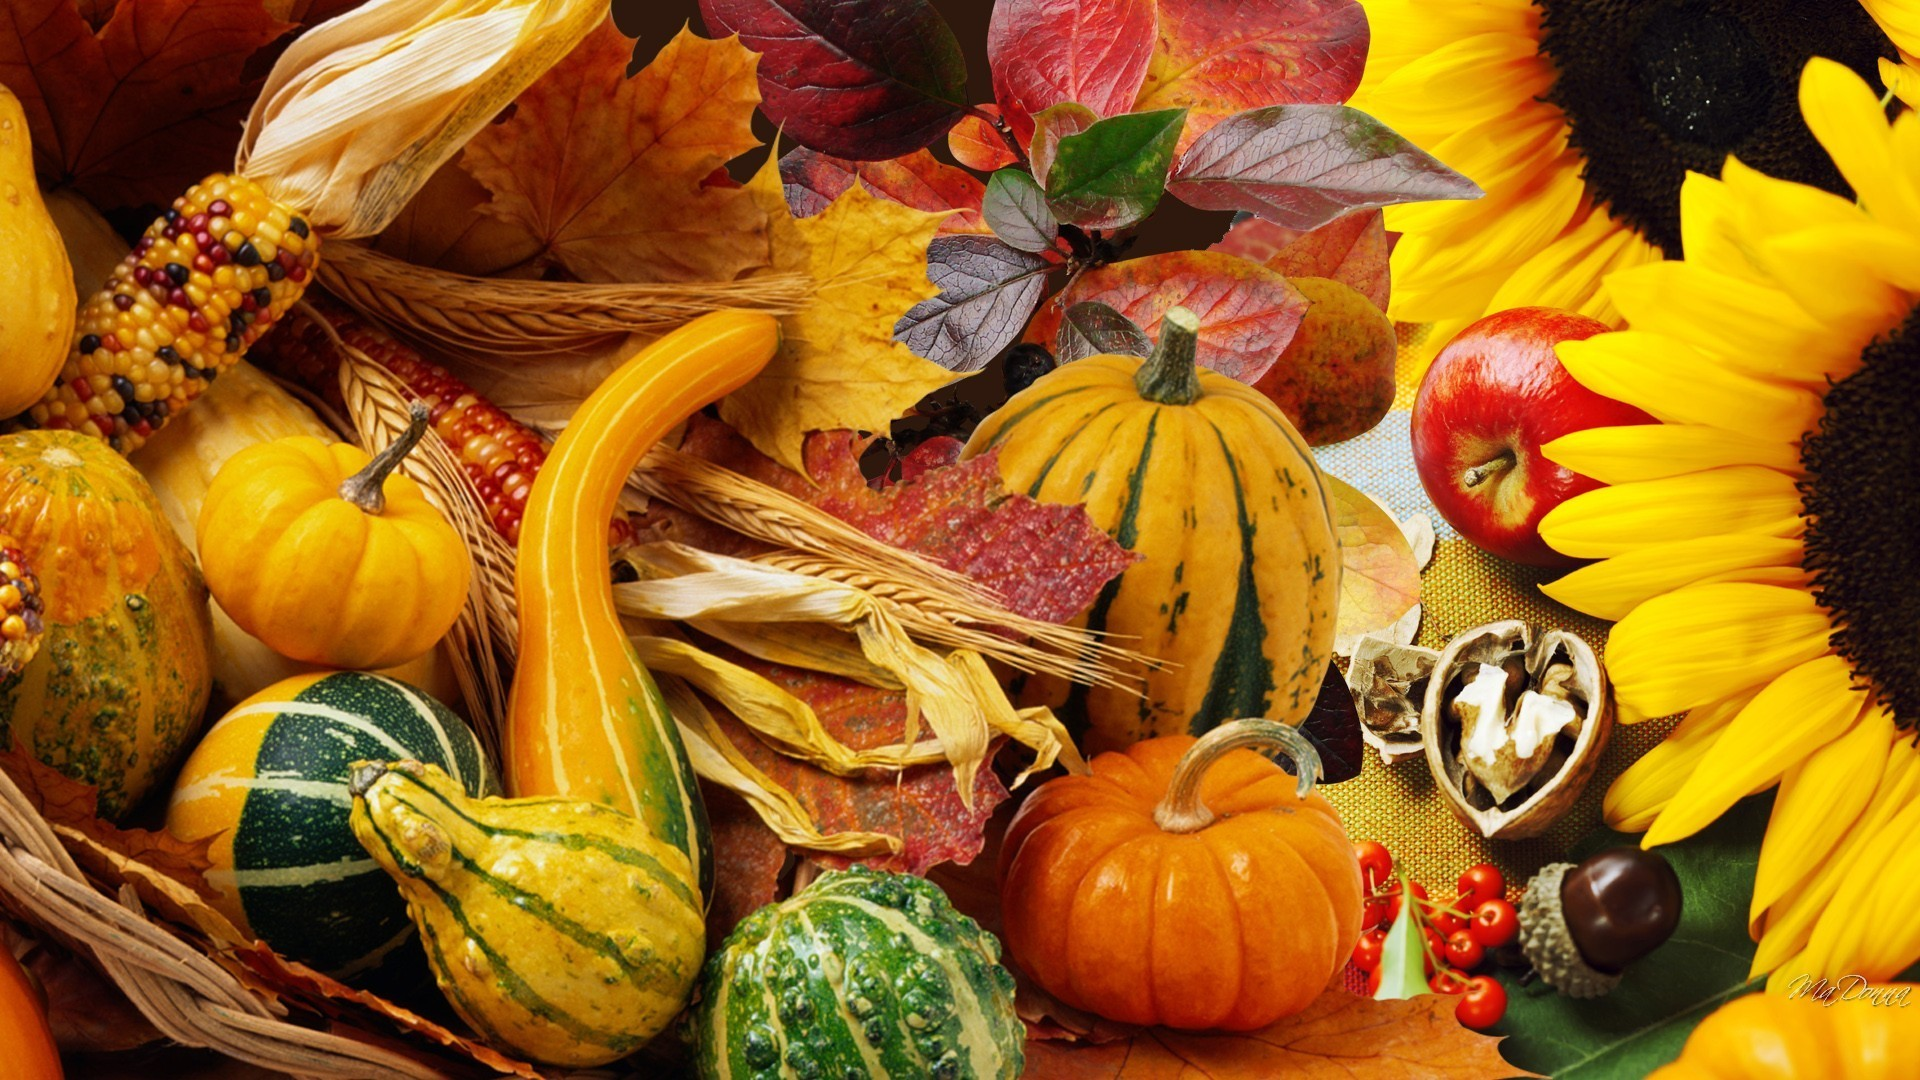 1920x1080 Thanksgiving Tag - Autumn Vegetables Fall Pumpkin Nuts Leaves Garden Apples  Harvest Squash Sunflowers Acorns Gourds